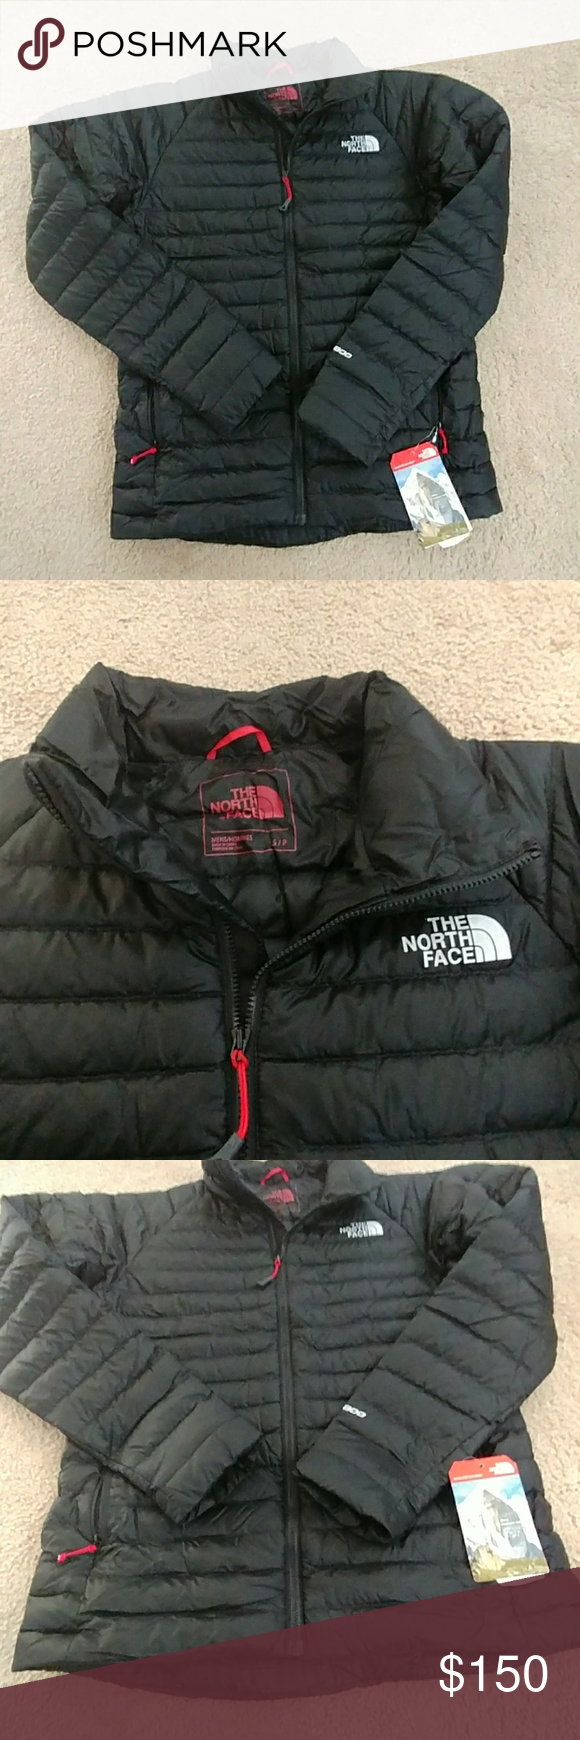 Nwt The North Face Mens Quincy Jacket Black Small North Face Mens Jackets Black North Face [ 1740 x 580 Pixel ]